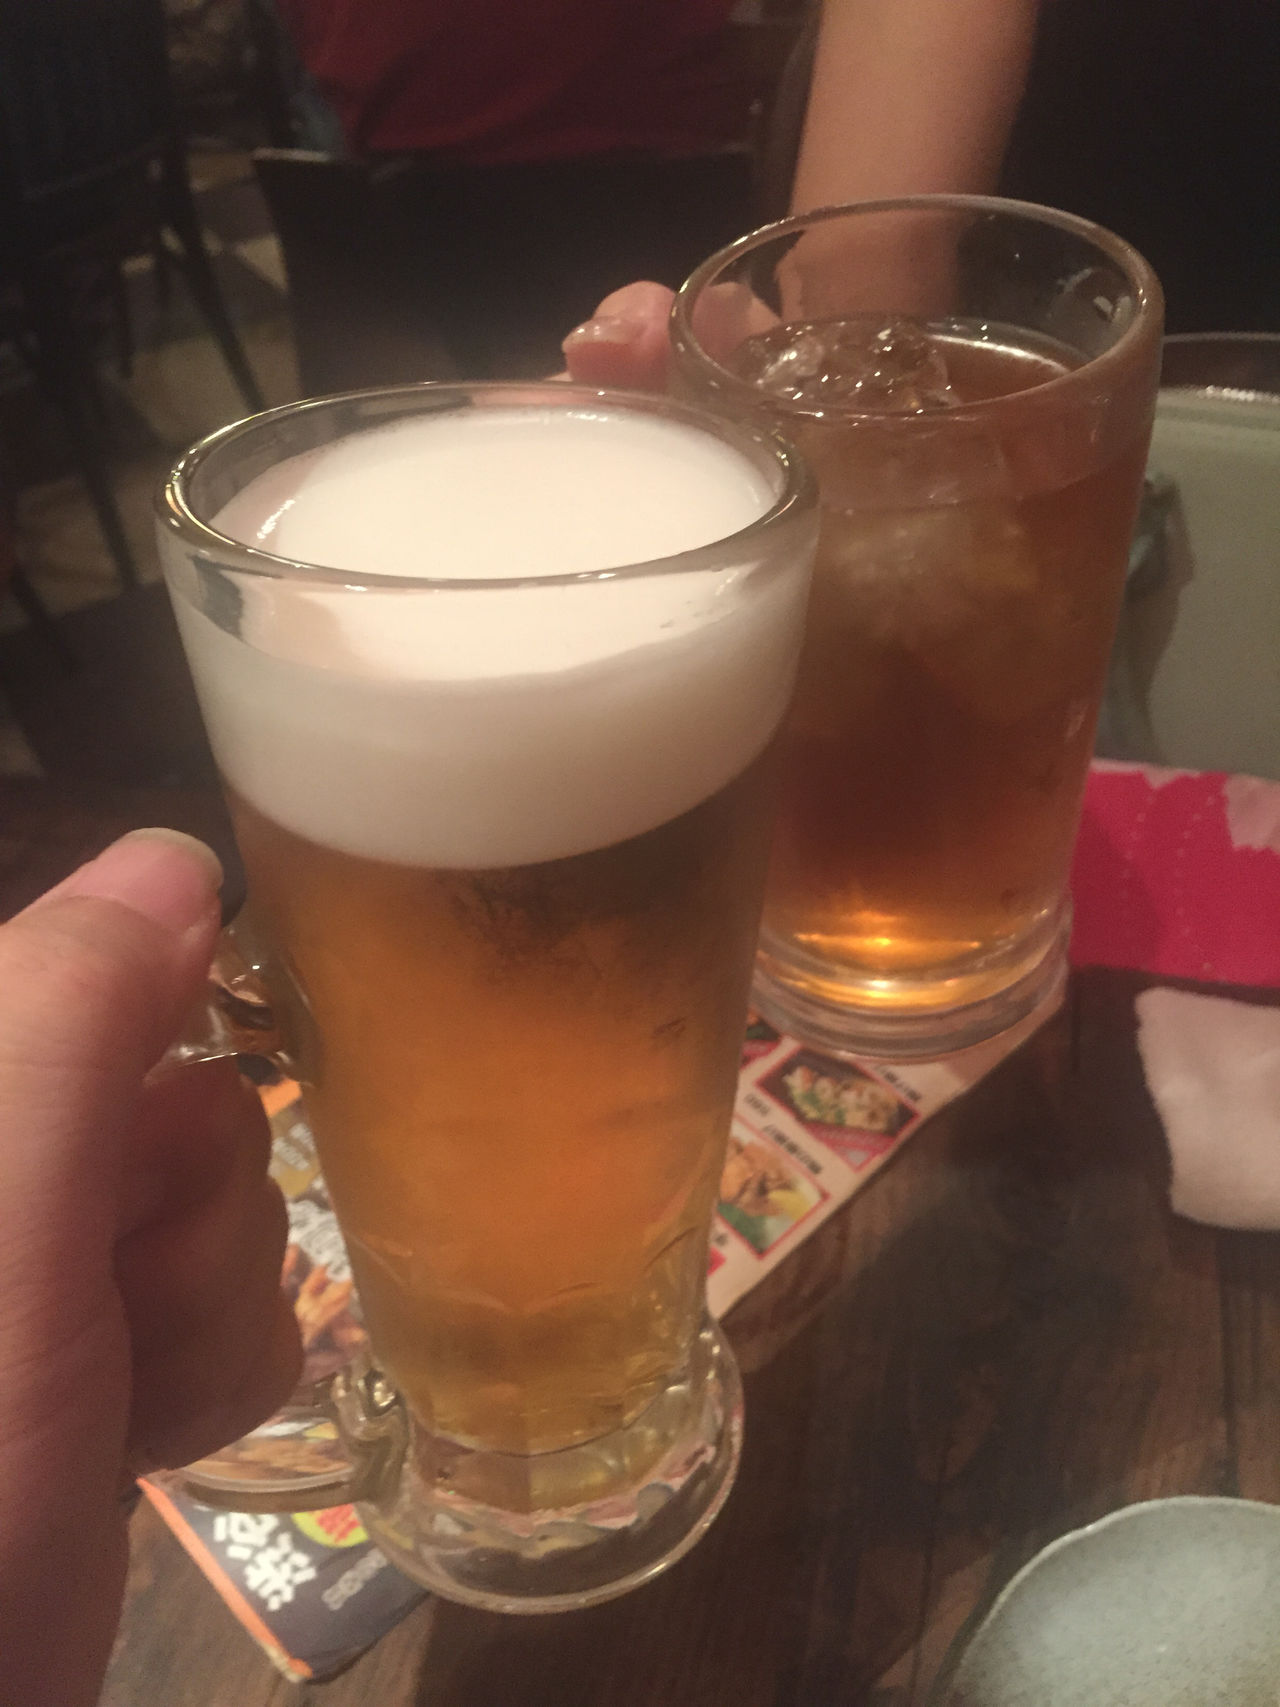 Alcohol Beer Beer Mug Cheers Cheers! Drink Drinking Drinking Beer Enjoying Life Food And Drink Freshness From My Point Of View Glass Hand Hands At Work Happy Holiday POV Indoors  Izakaya Japanese Style Onthetable Party Softness Still Life Toast